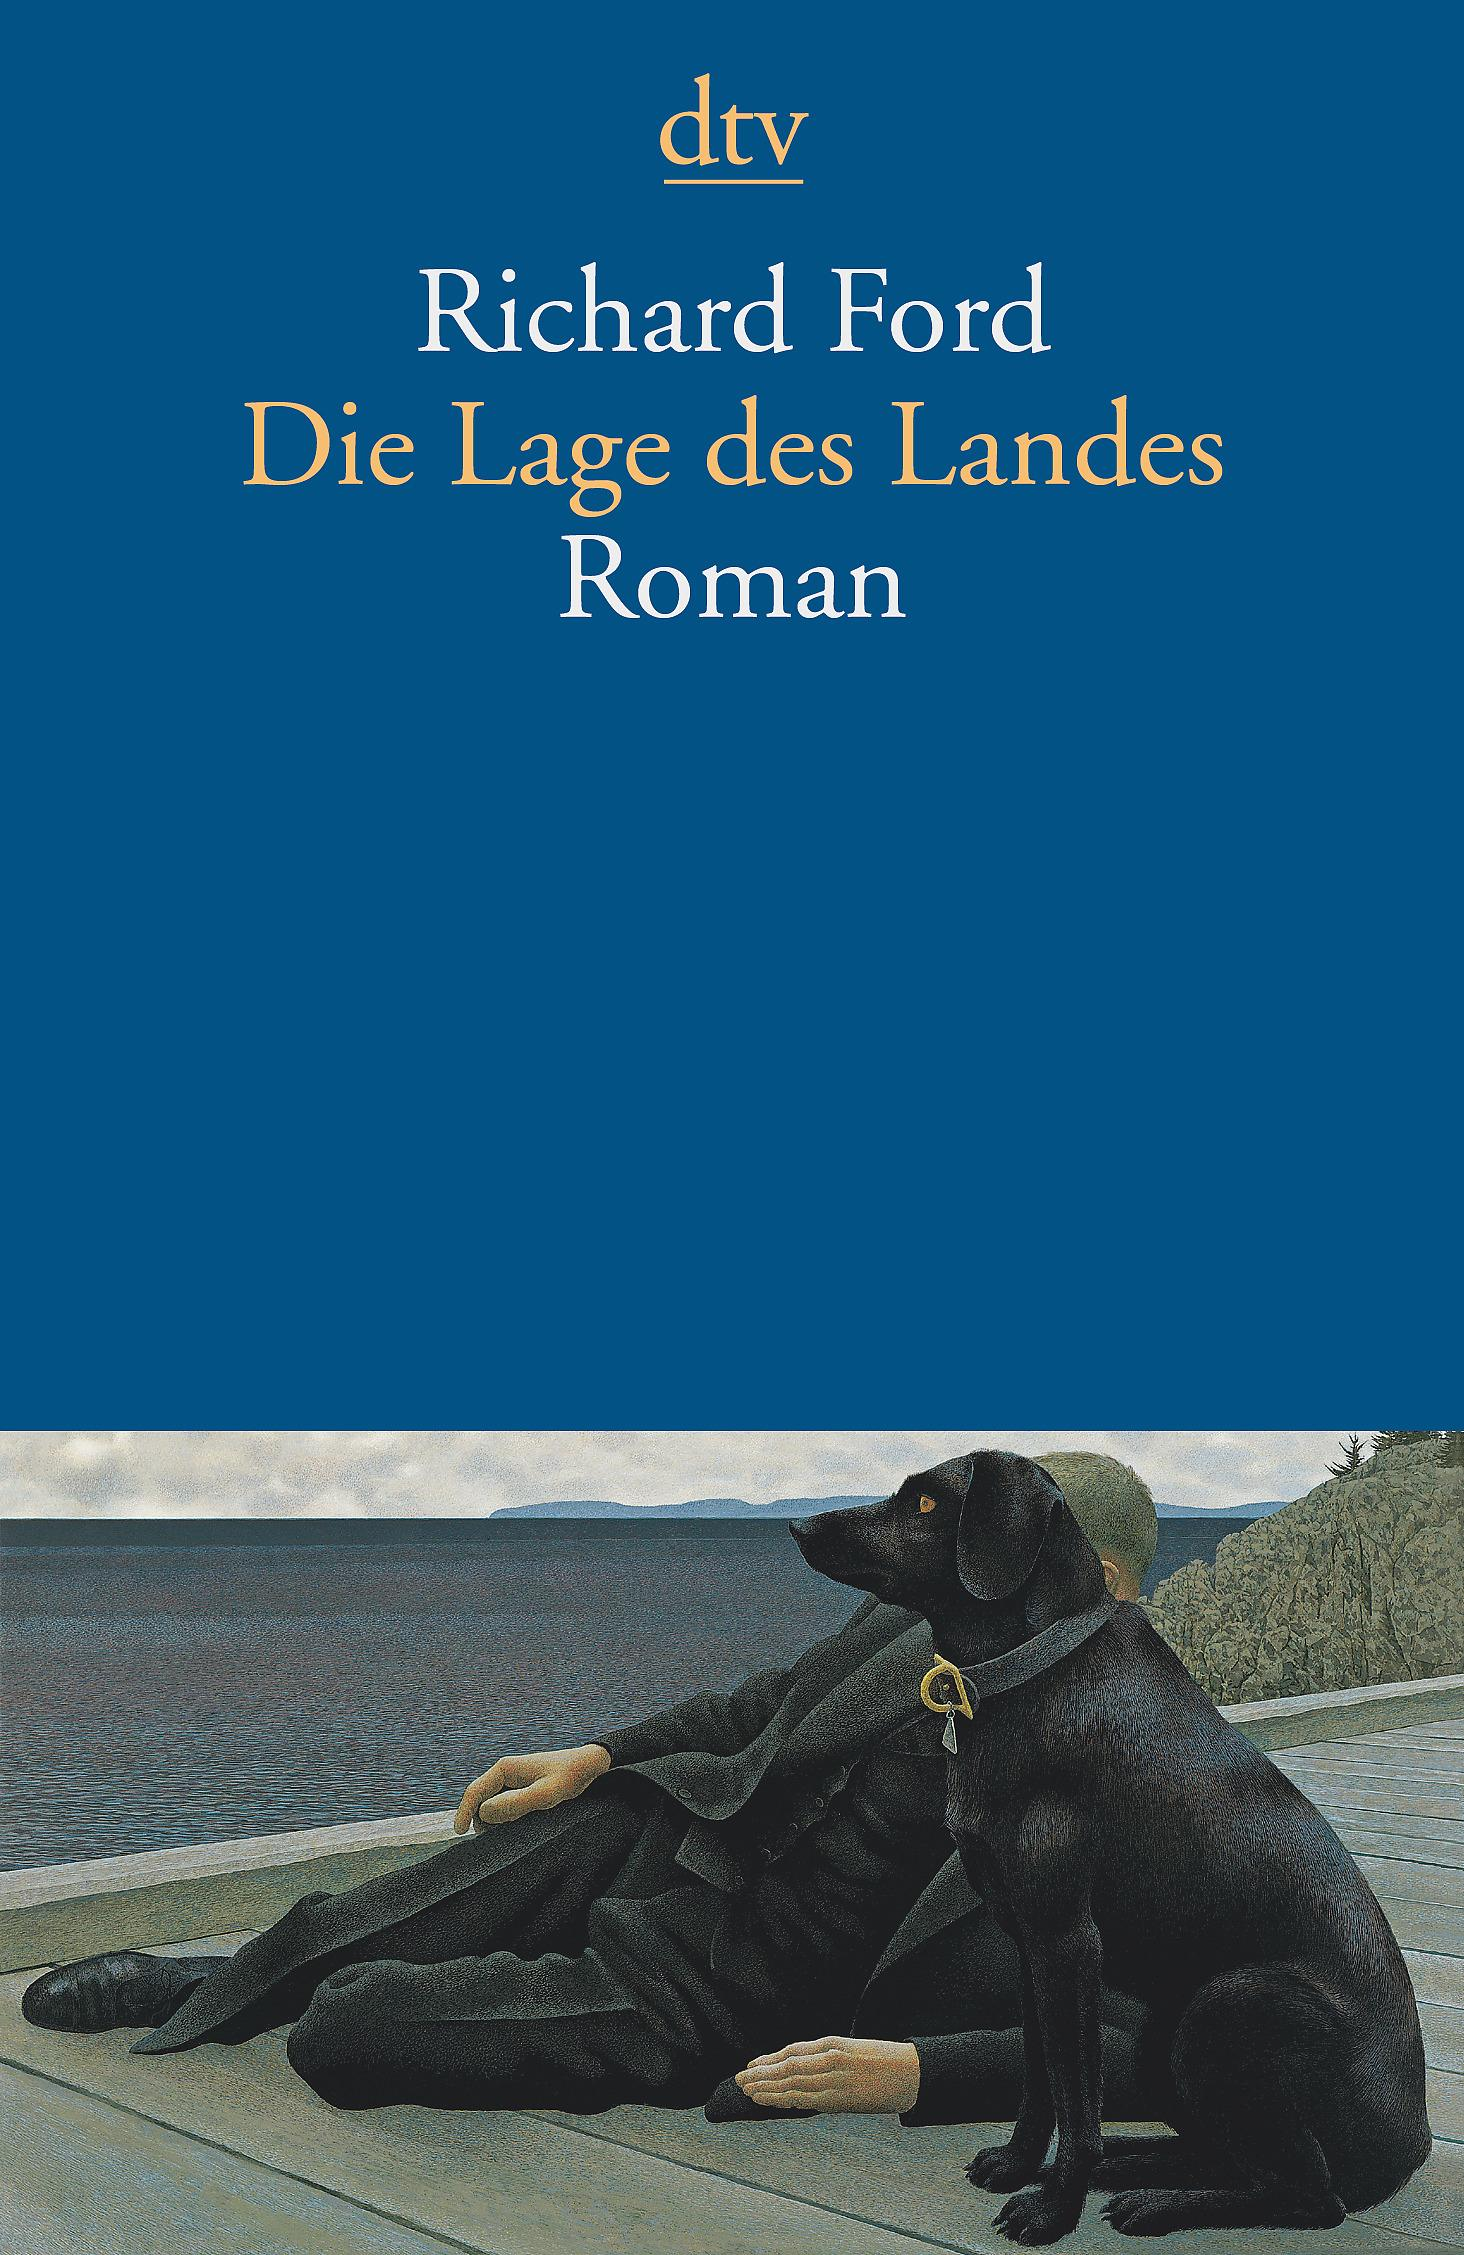 Die Lage des Landes Richard Ford 9783423144438